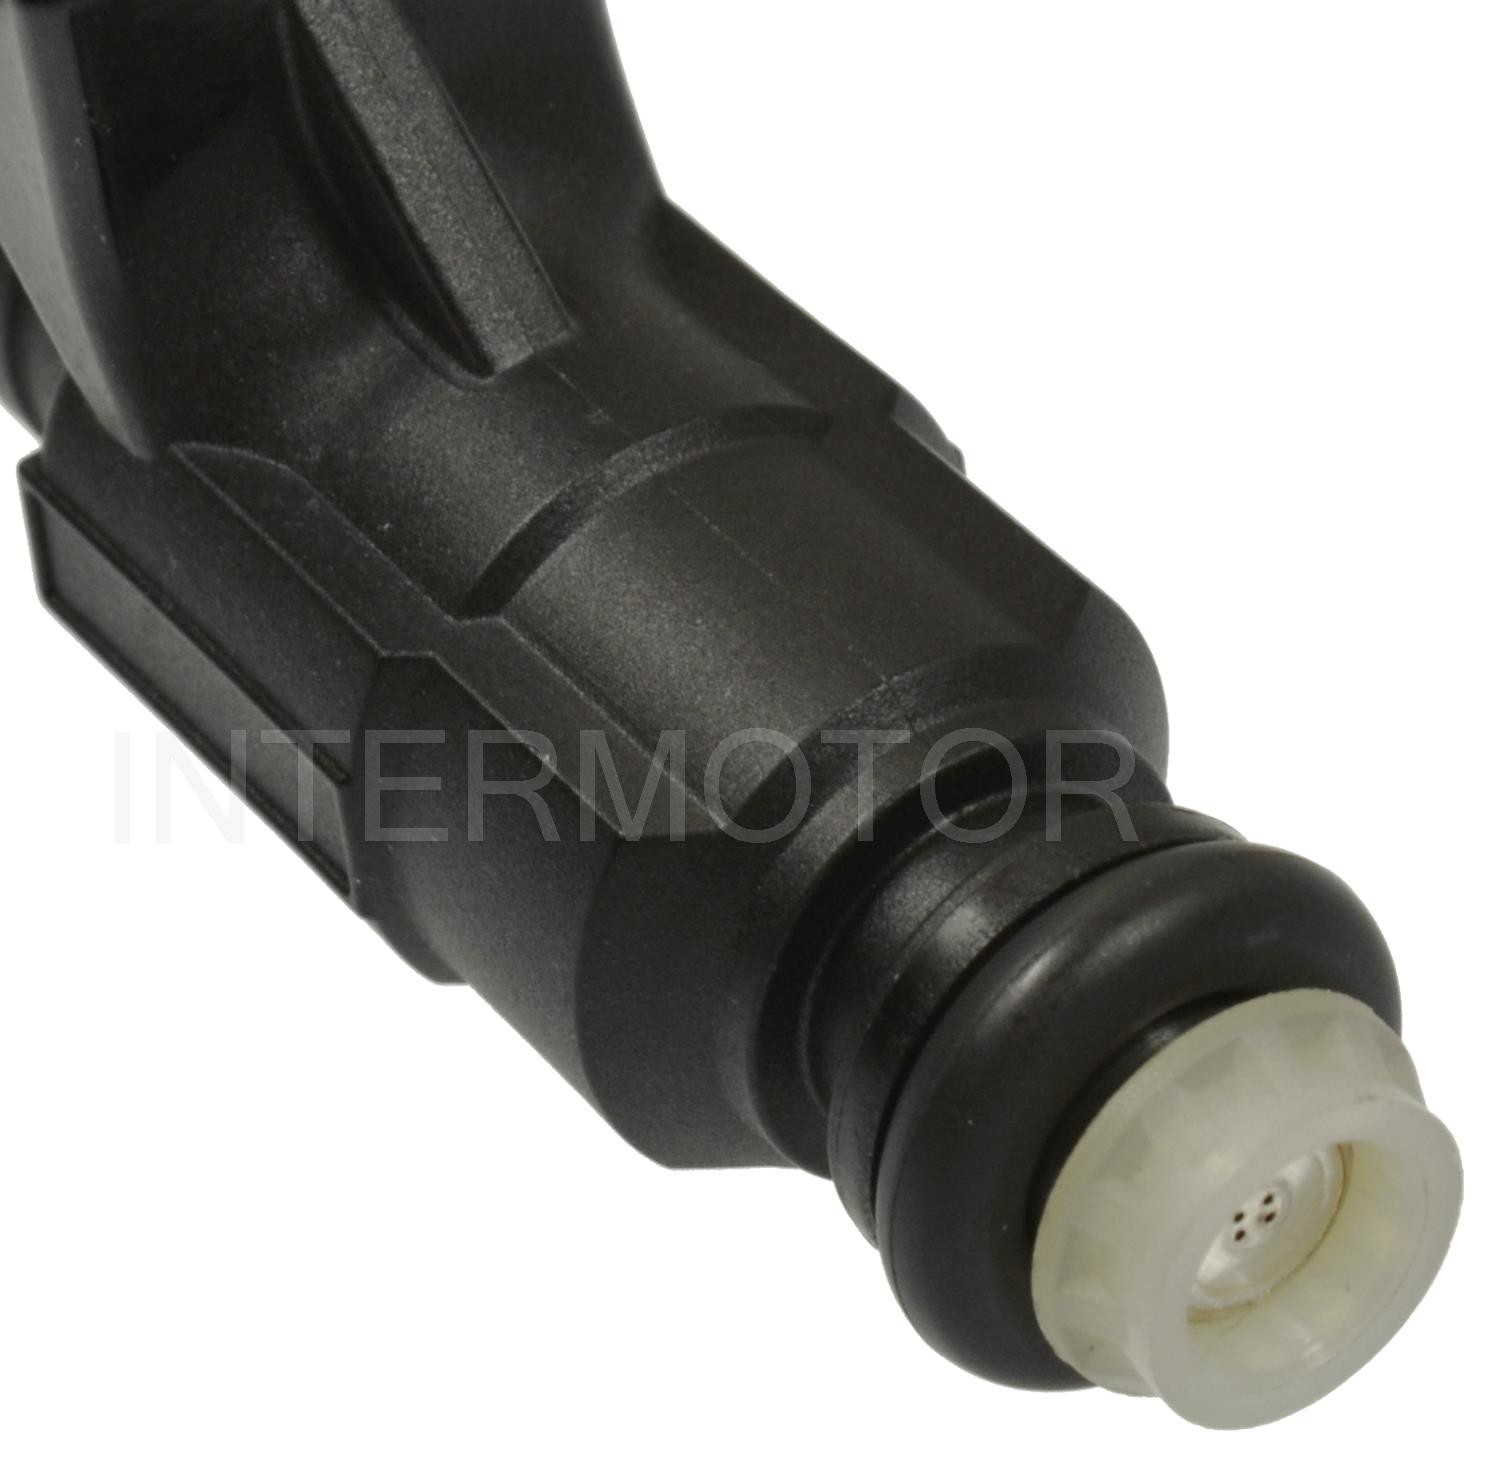 1999 Mercedes Benz Ml320 Fuel Injector Filter Location Si Fj665